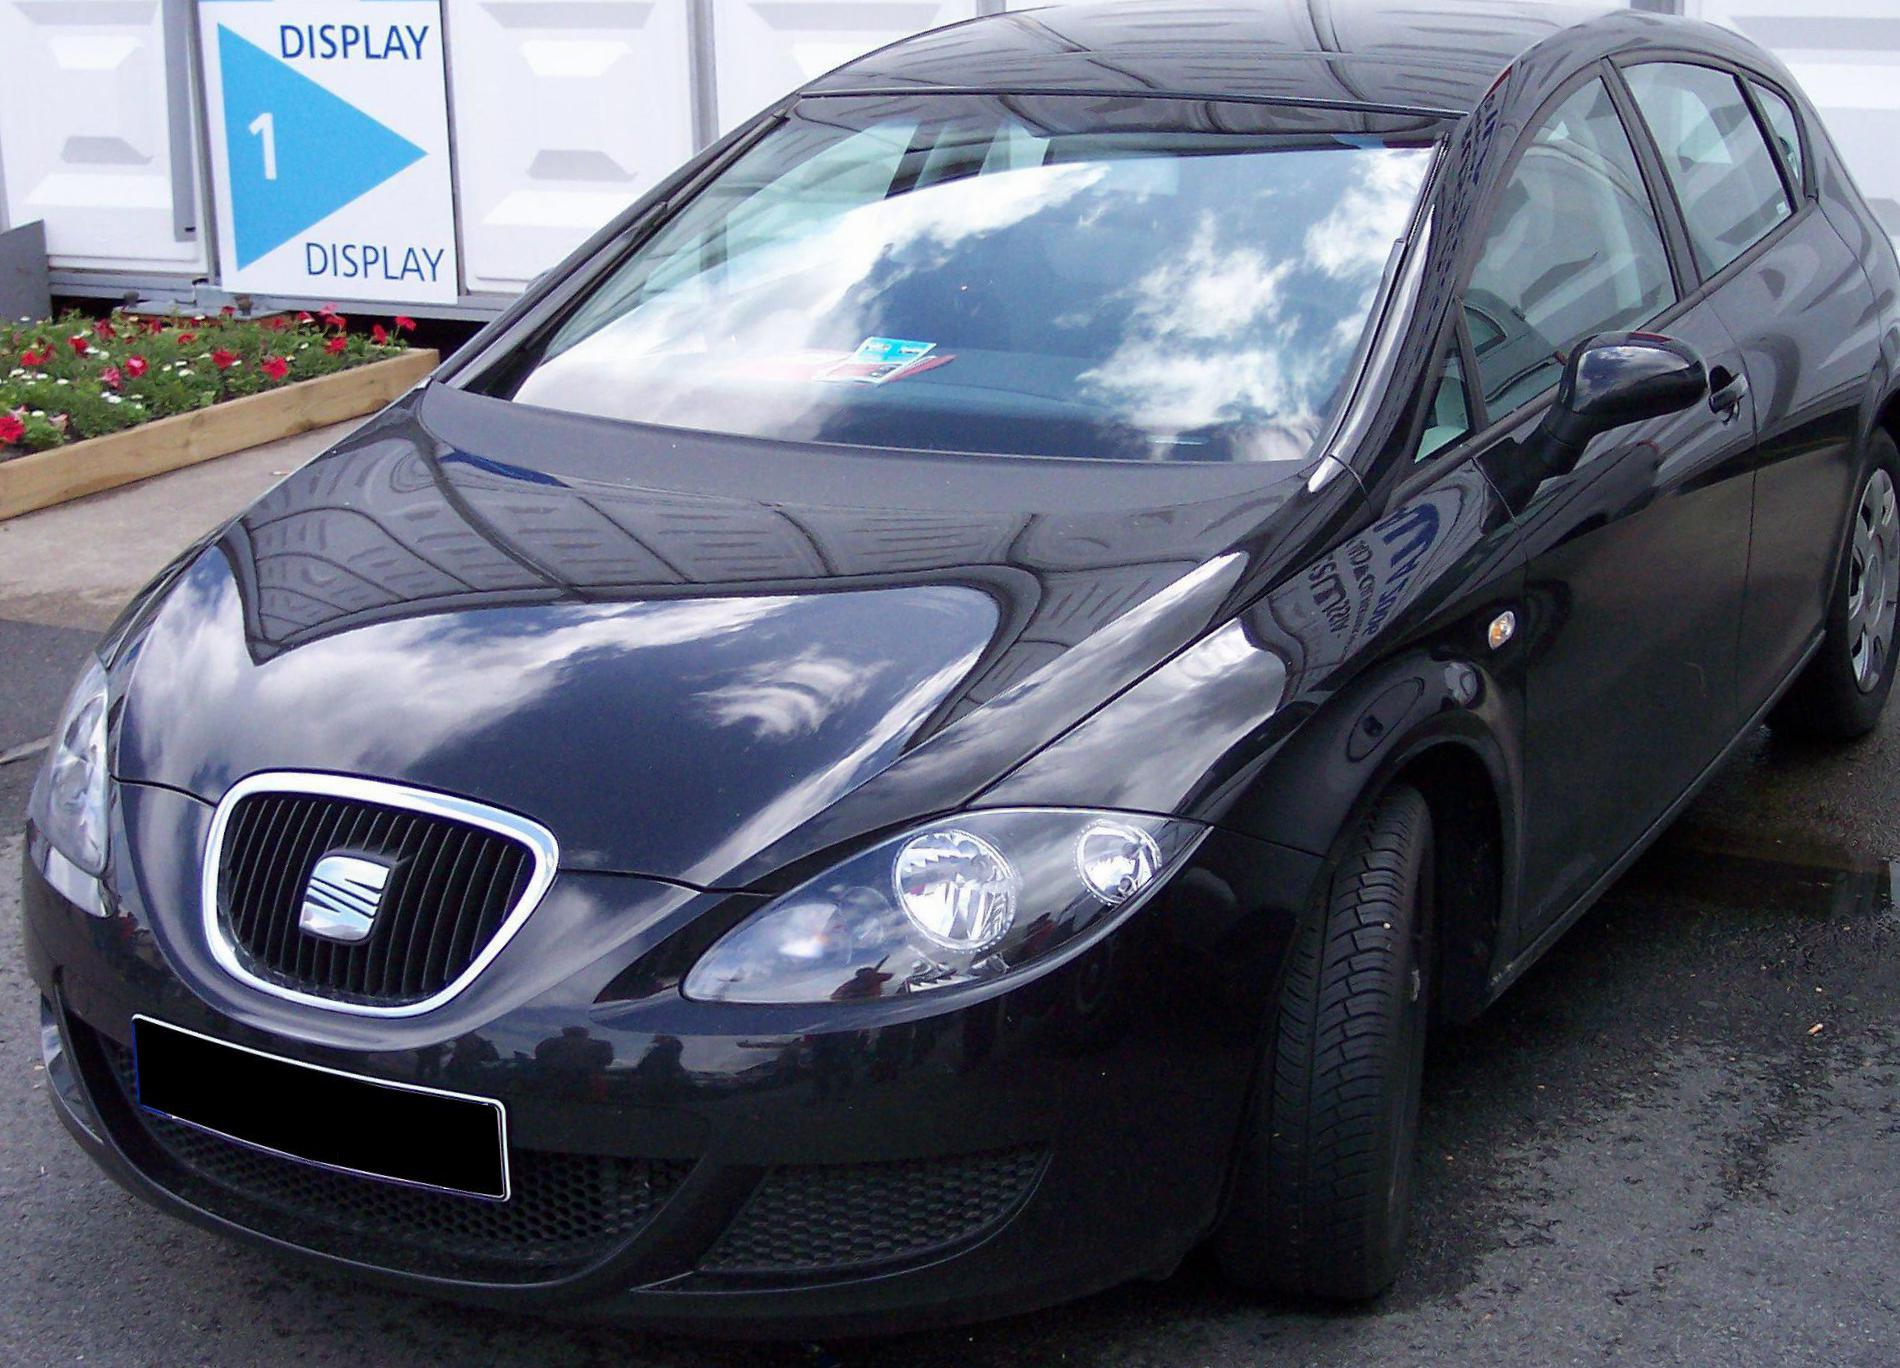 Leon FR Seat used hatchback